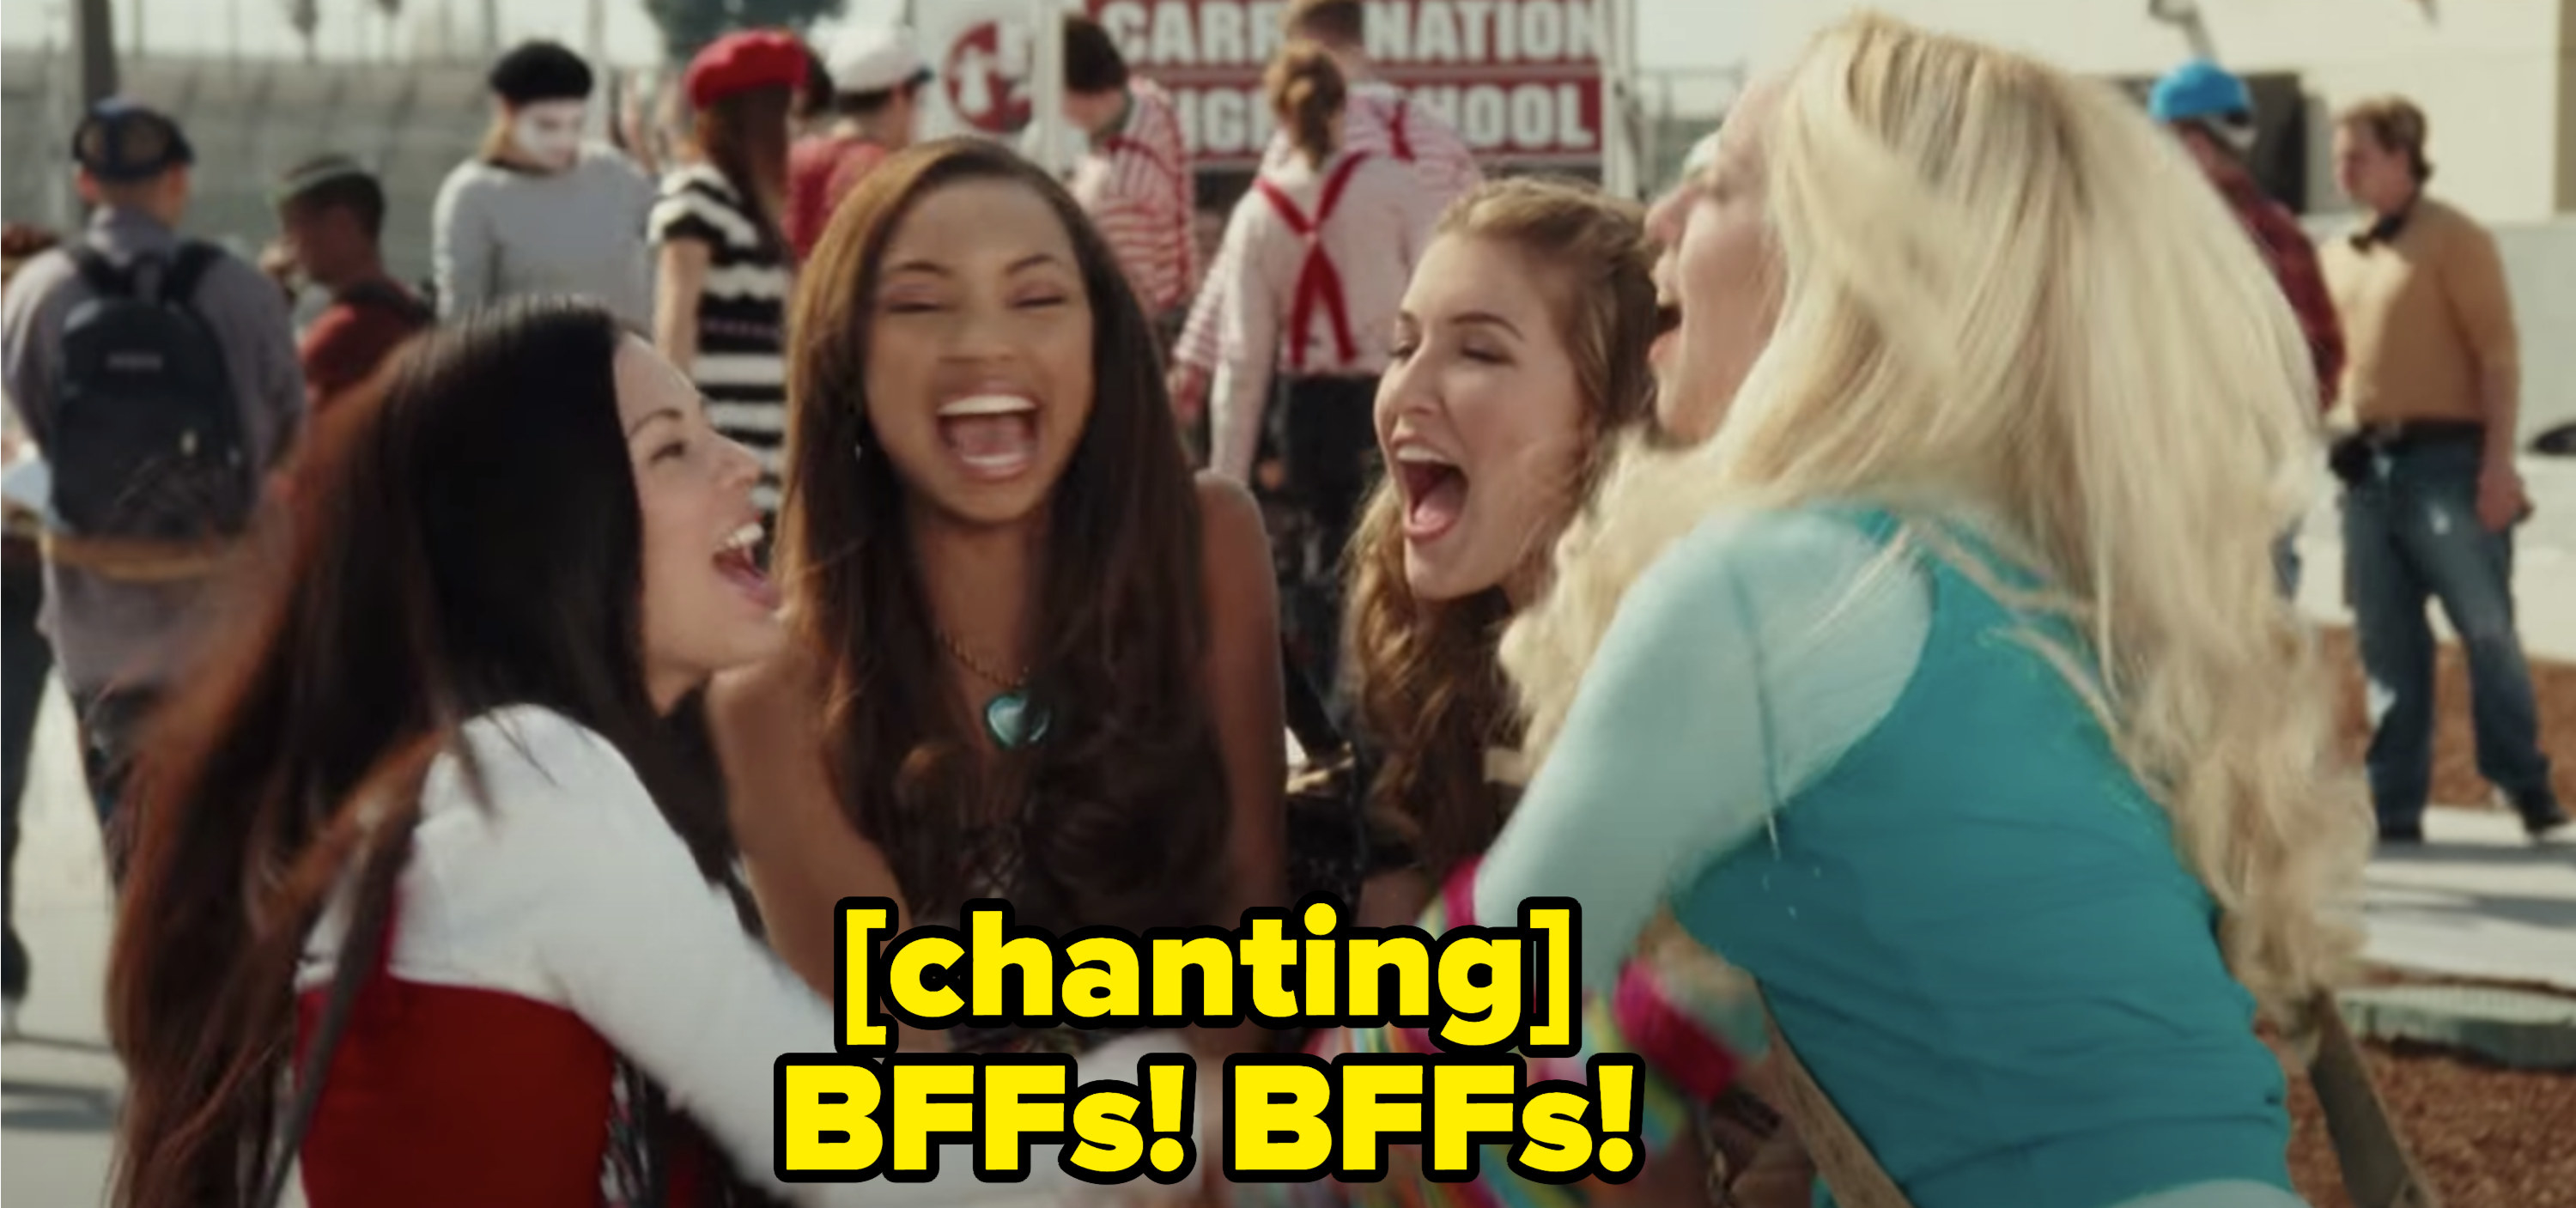 """All of the Bratz characters embracing outside at their school while chanting """"Bffs! Bffs!"""""""